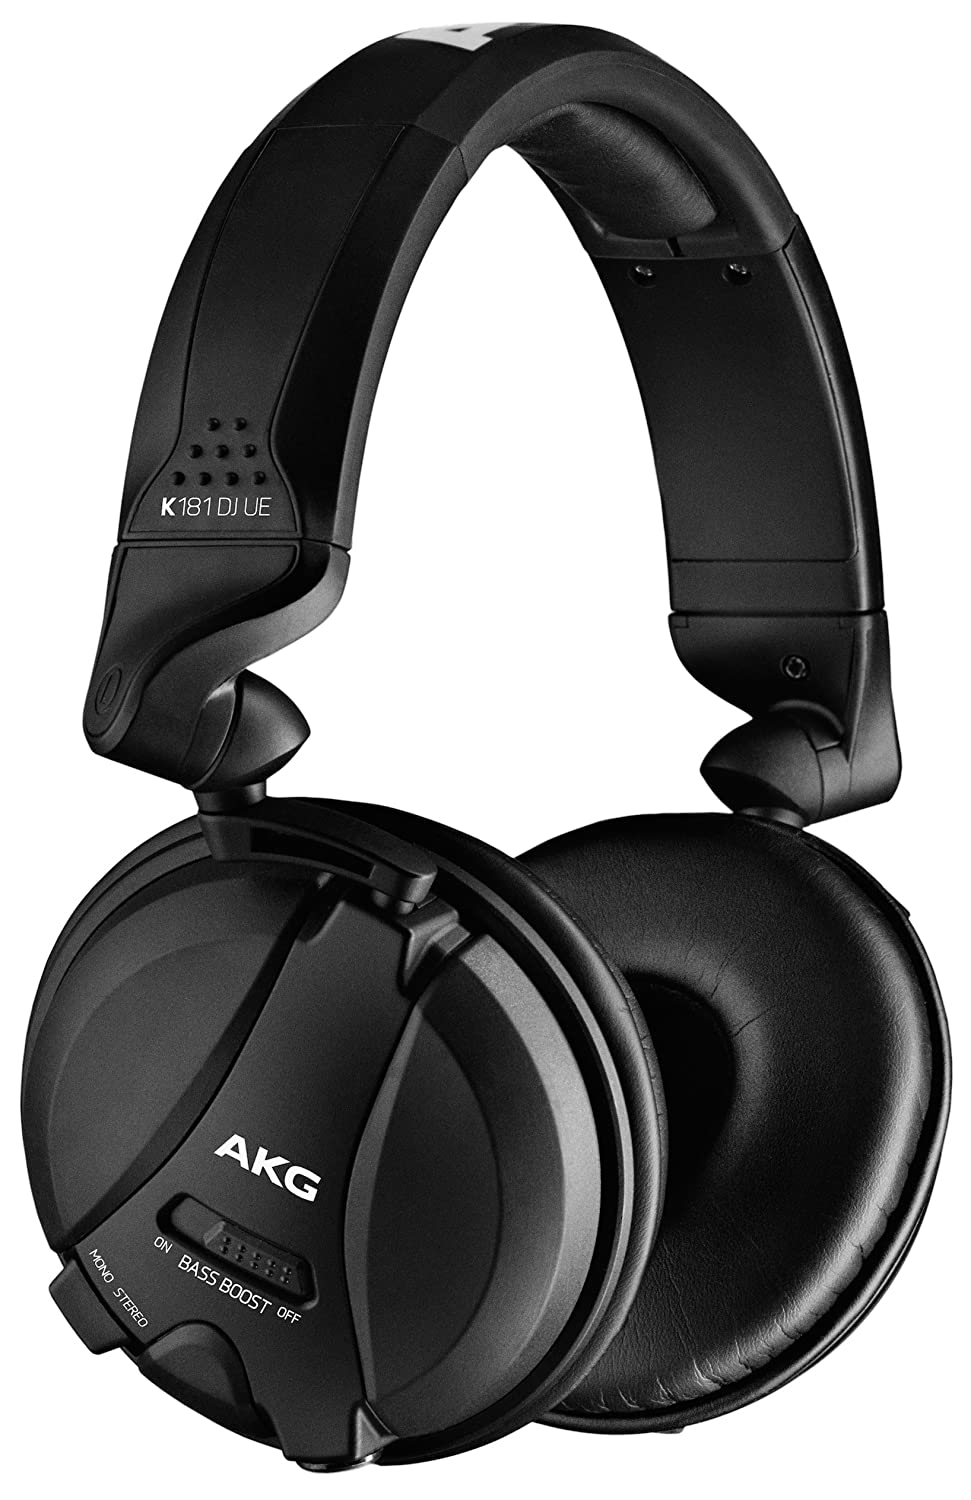 AKG K181DJUE DJ Headphones - Over Ear - Stereo Mono Switch - Black AKG K181 DJ UE